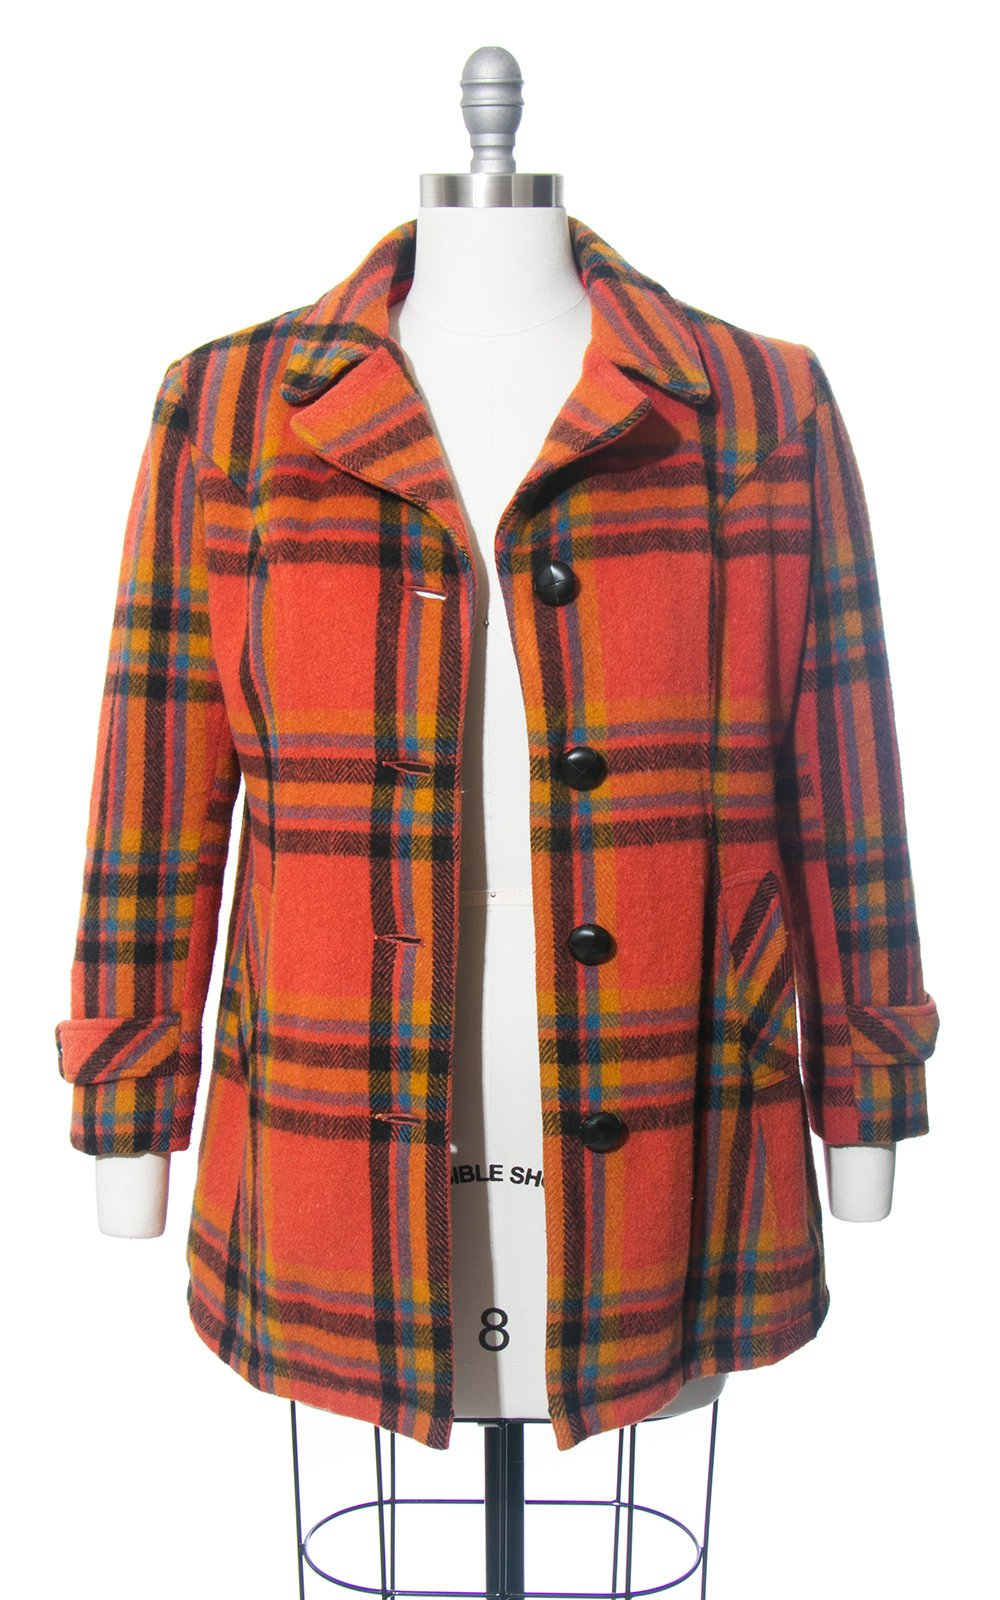 Vintage 1970s Coat | 70s Orange Plaid Pea Coat Short Warm Winter Jacket (medium)